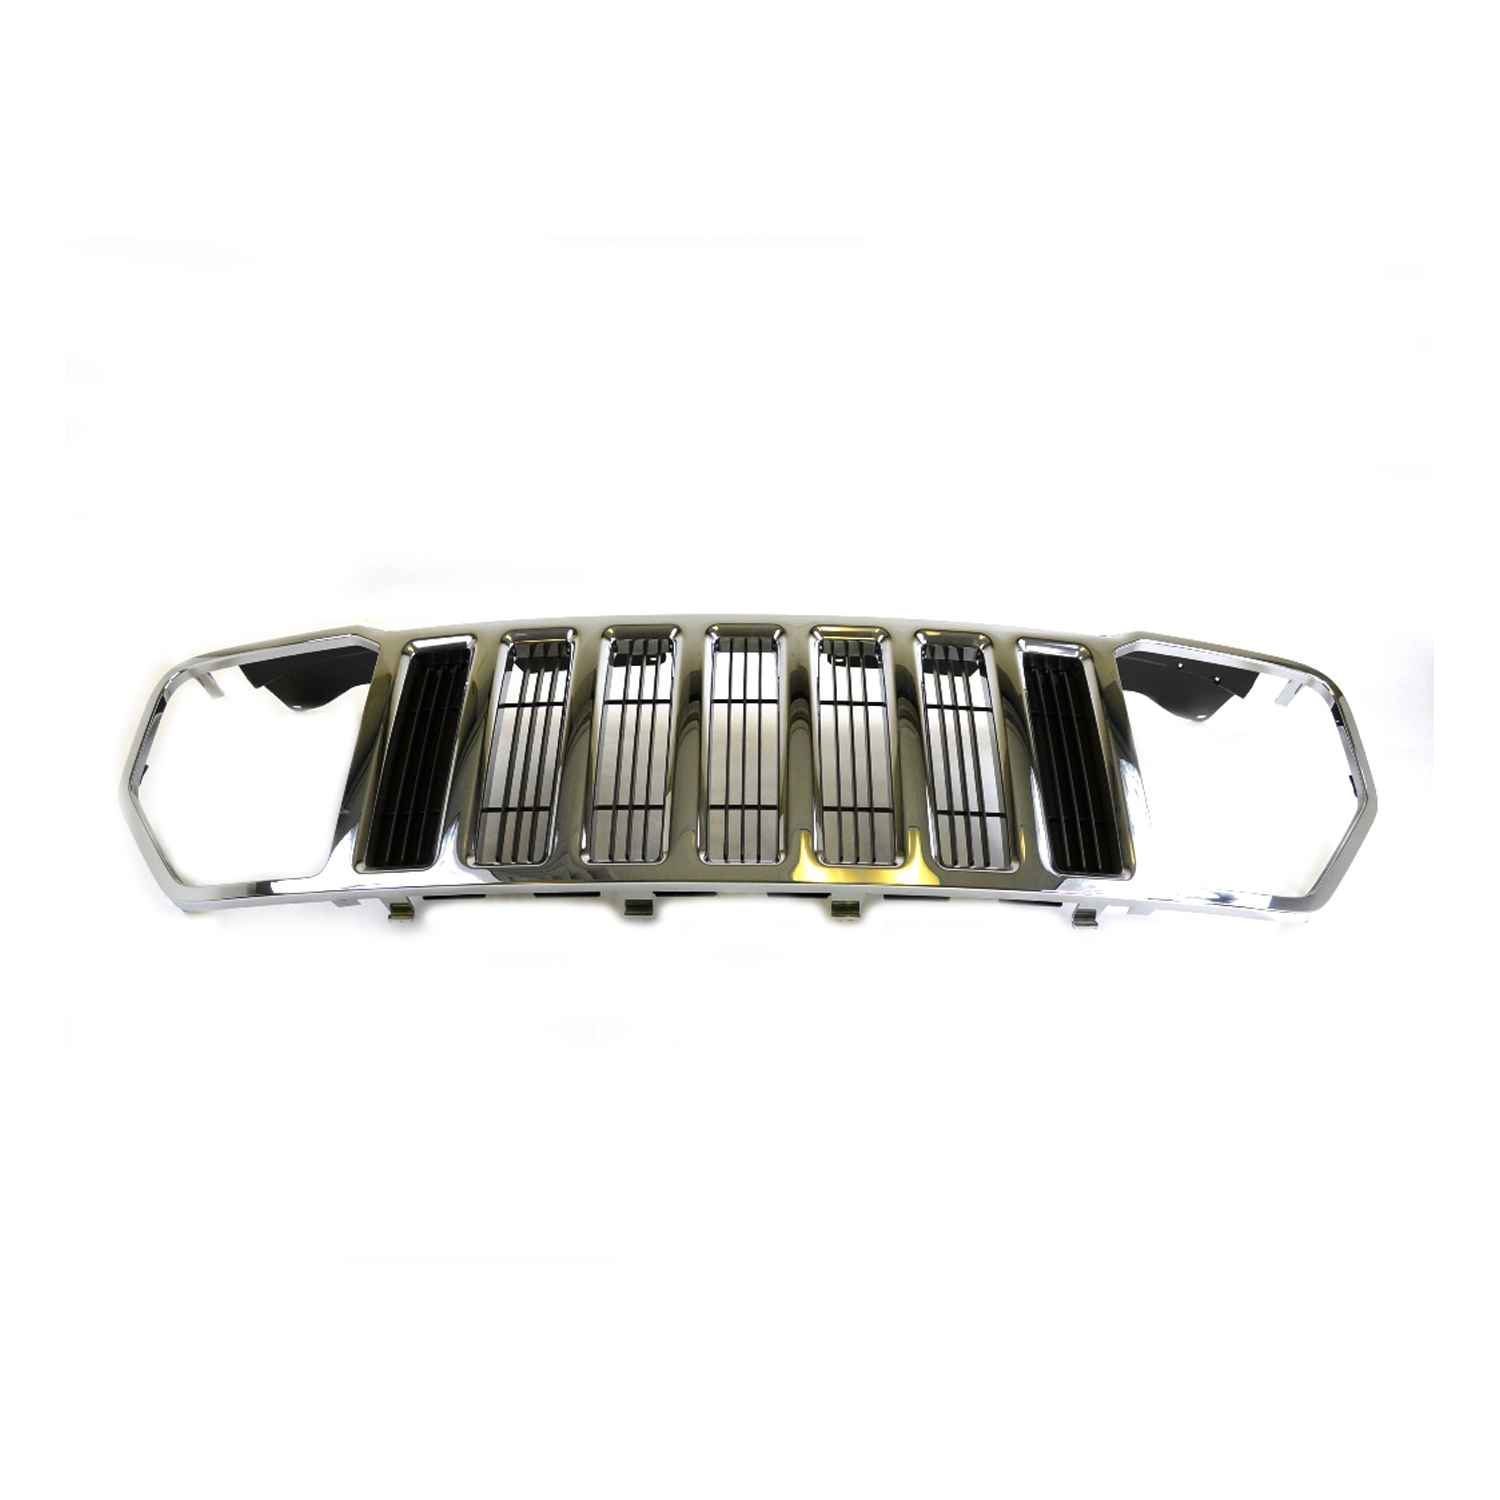 OEM 2012 Jeep Liberty Grille (Part #82211165)